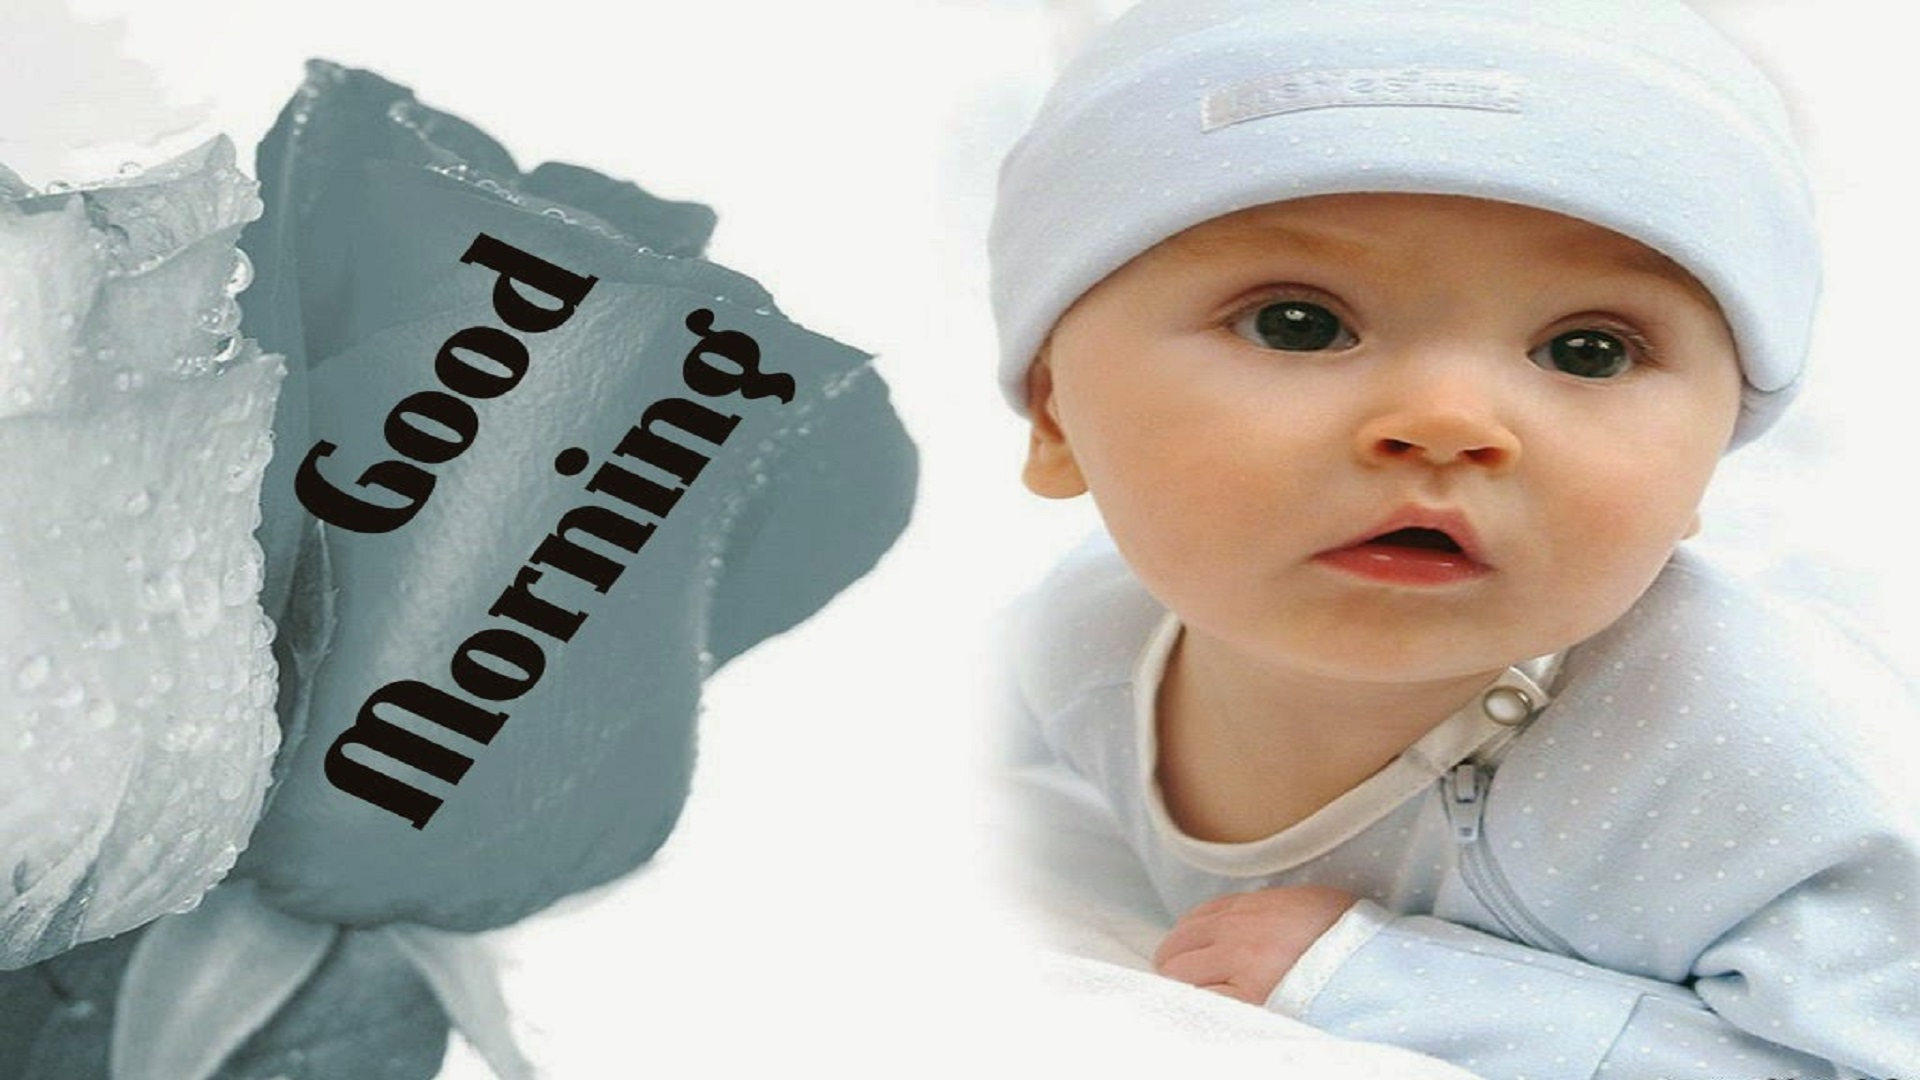 Good Morning Beautiful Baby Hd Free Wallpapers - Good Morning Image With Beautiful Baby , HD Wallpaper & Backgrounds